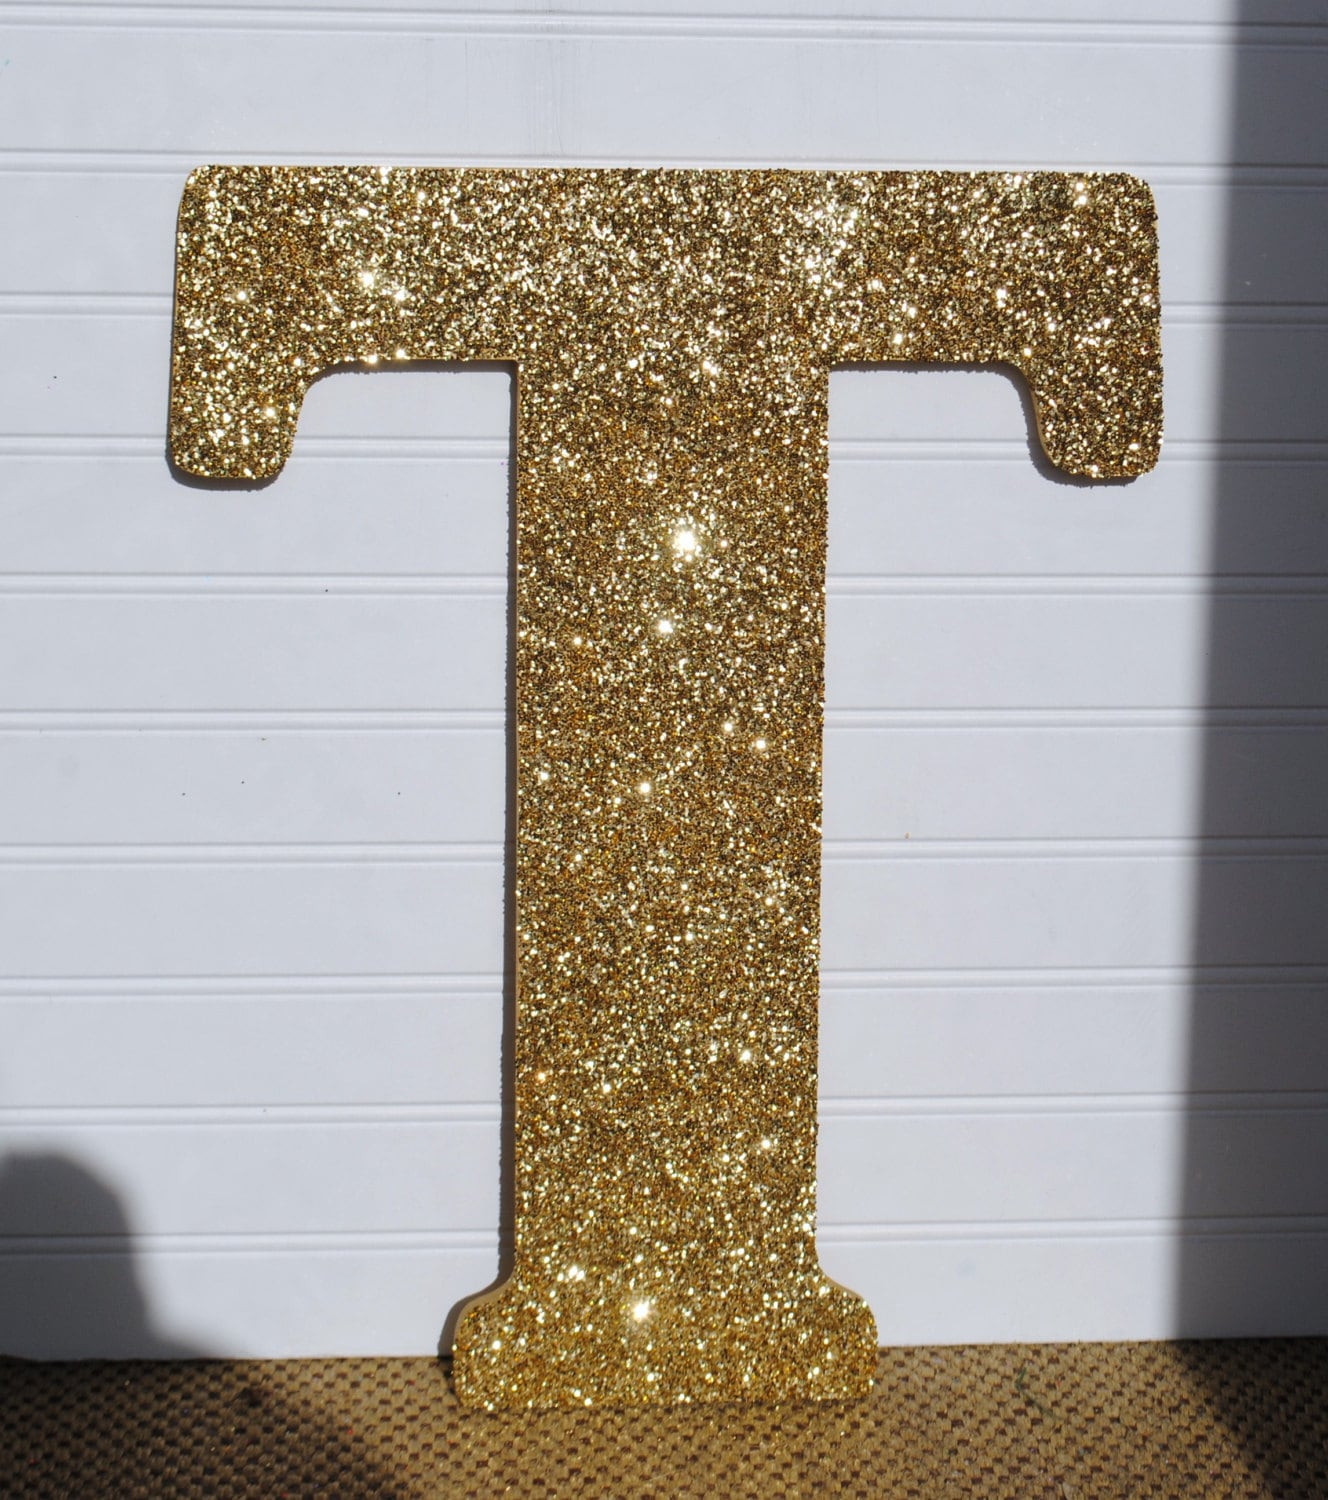 Gold Letters For Wall Decorative 18 Gold Glitter Wall Letters Girls Bedroom